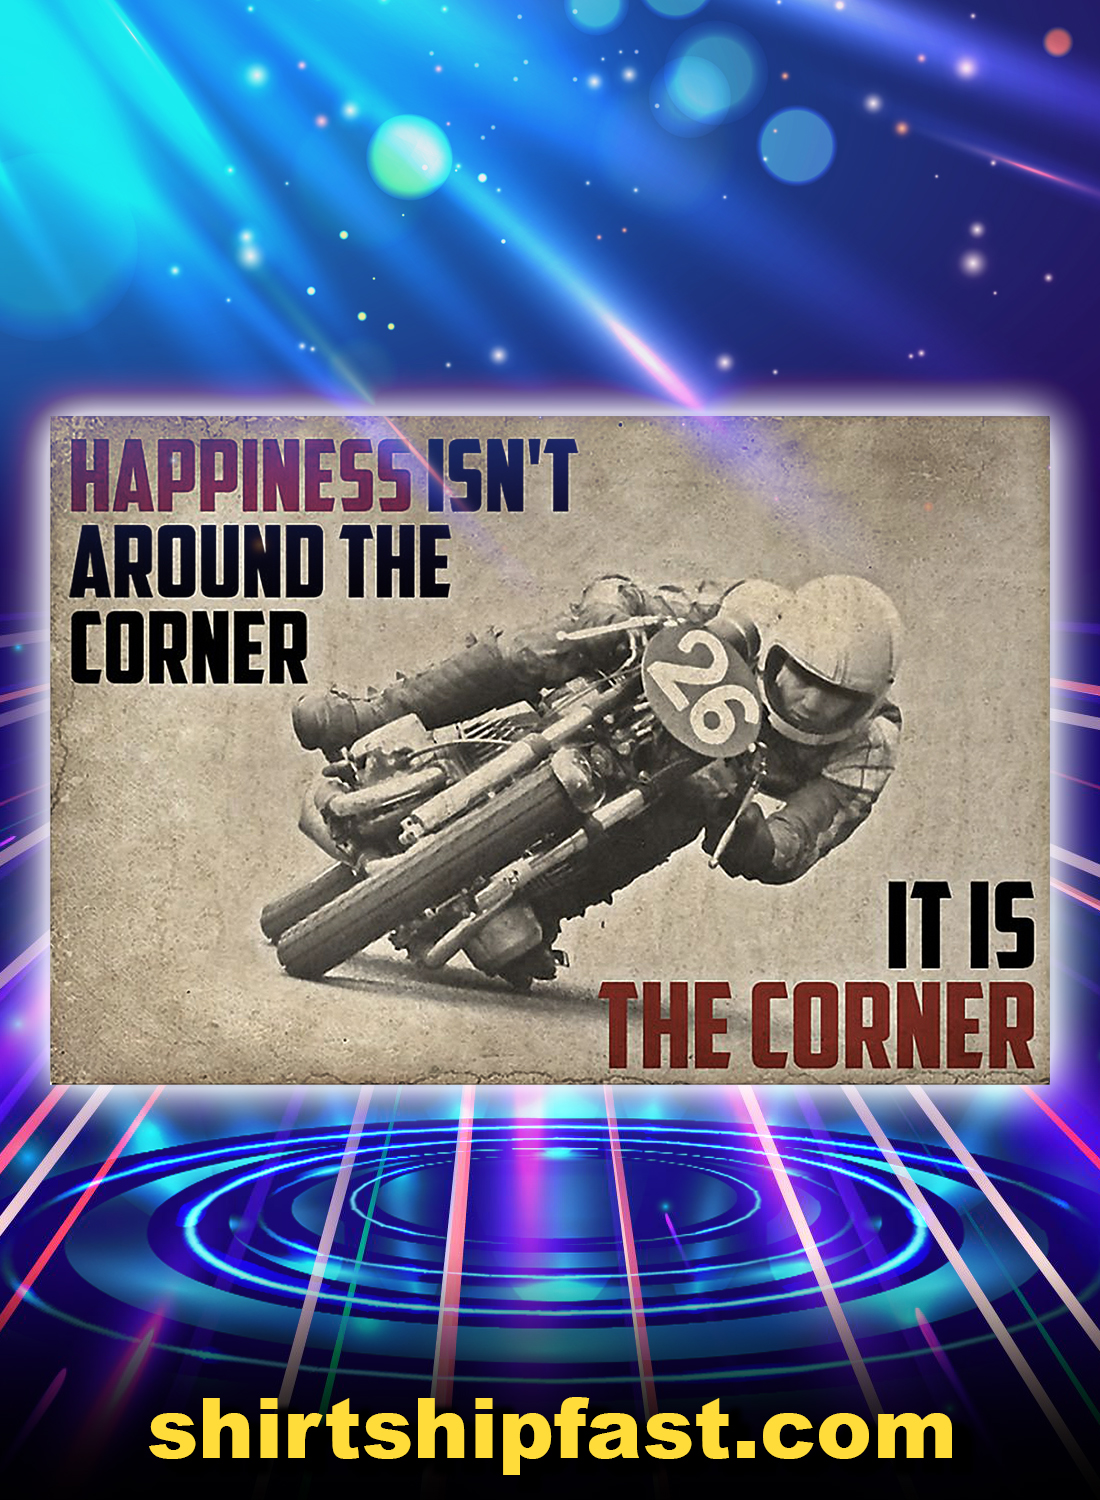 Motorcycle happiness isn't around the corner poster - A4